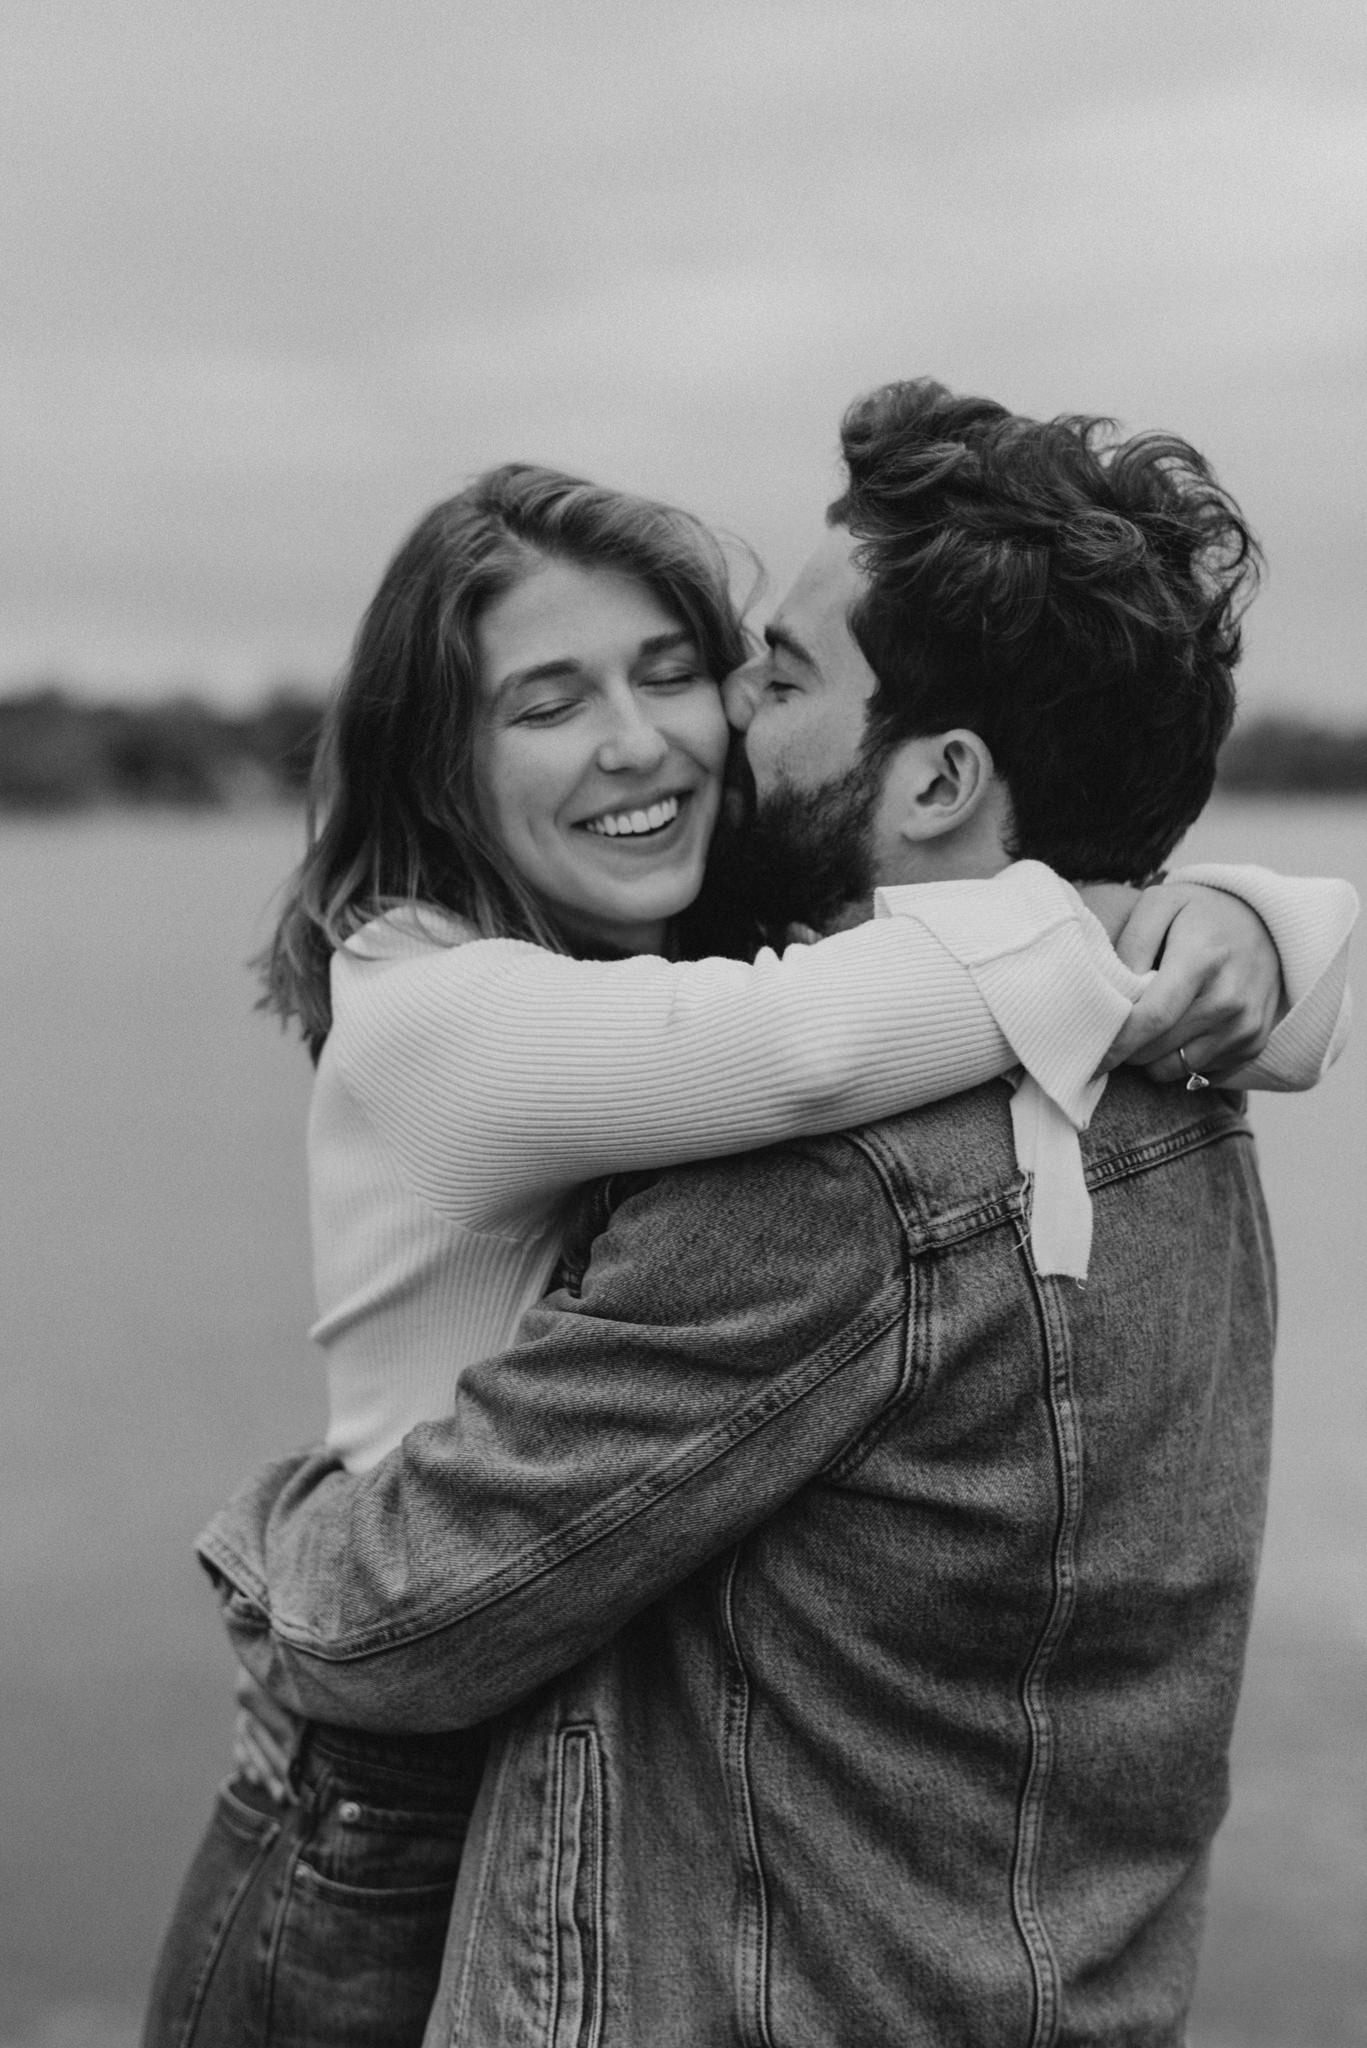 romantic black and white portrait of guy kissing woman on the cheek by the water in Levi's jeans